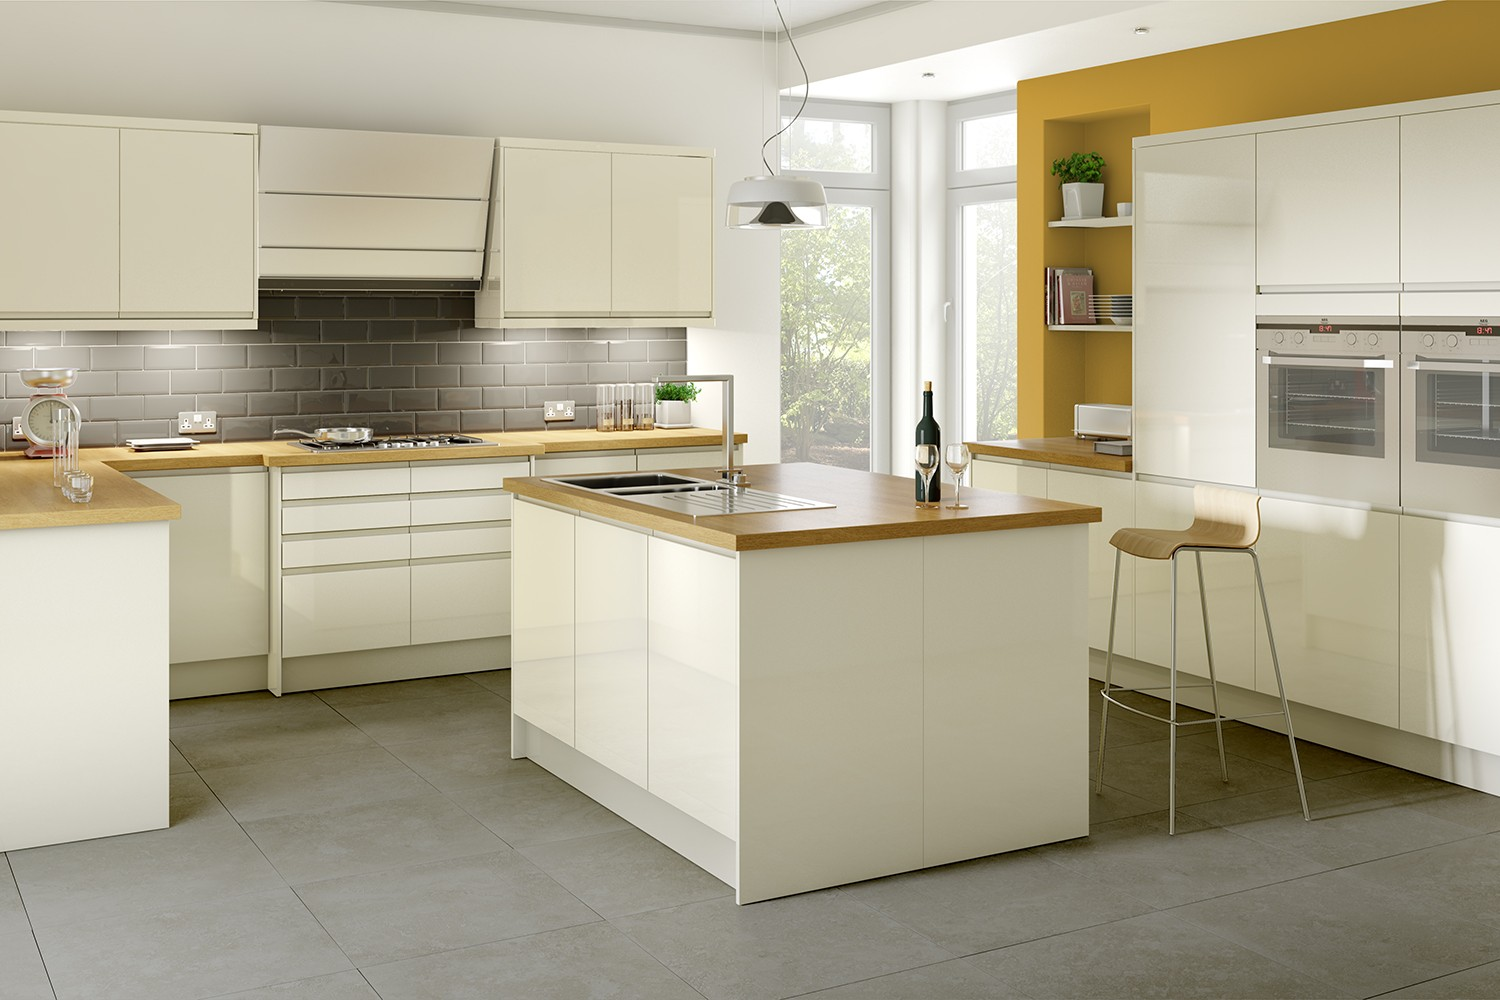 Selco Kitchen Doors Amp Selco Kitchens Google Search